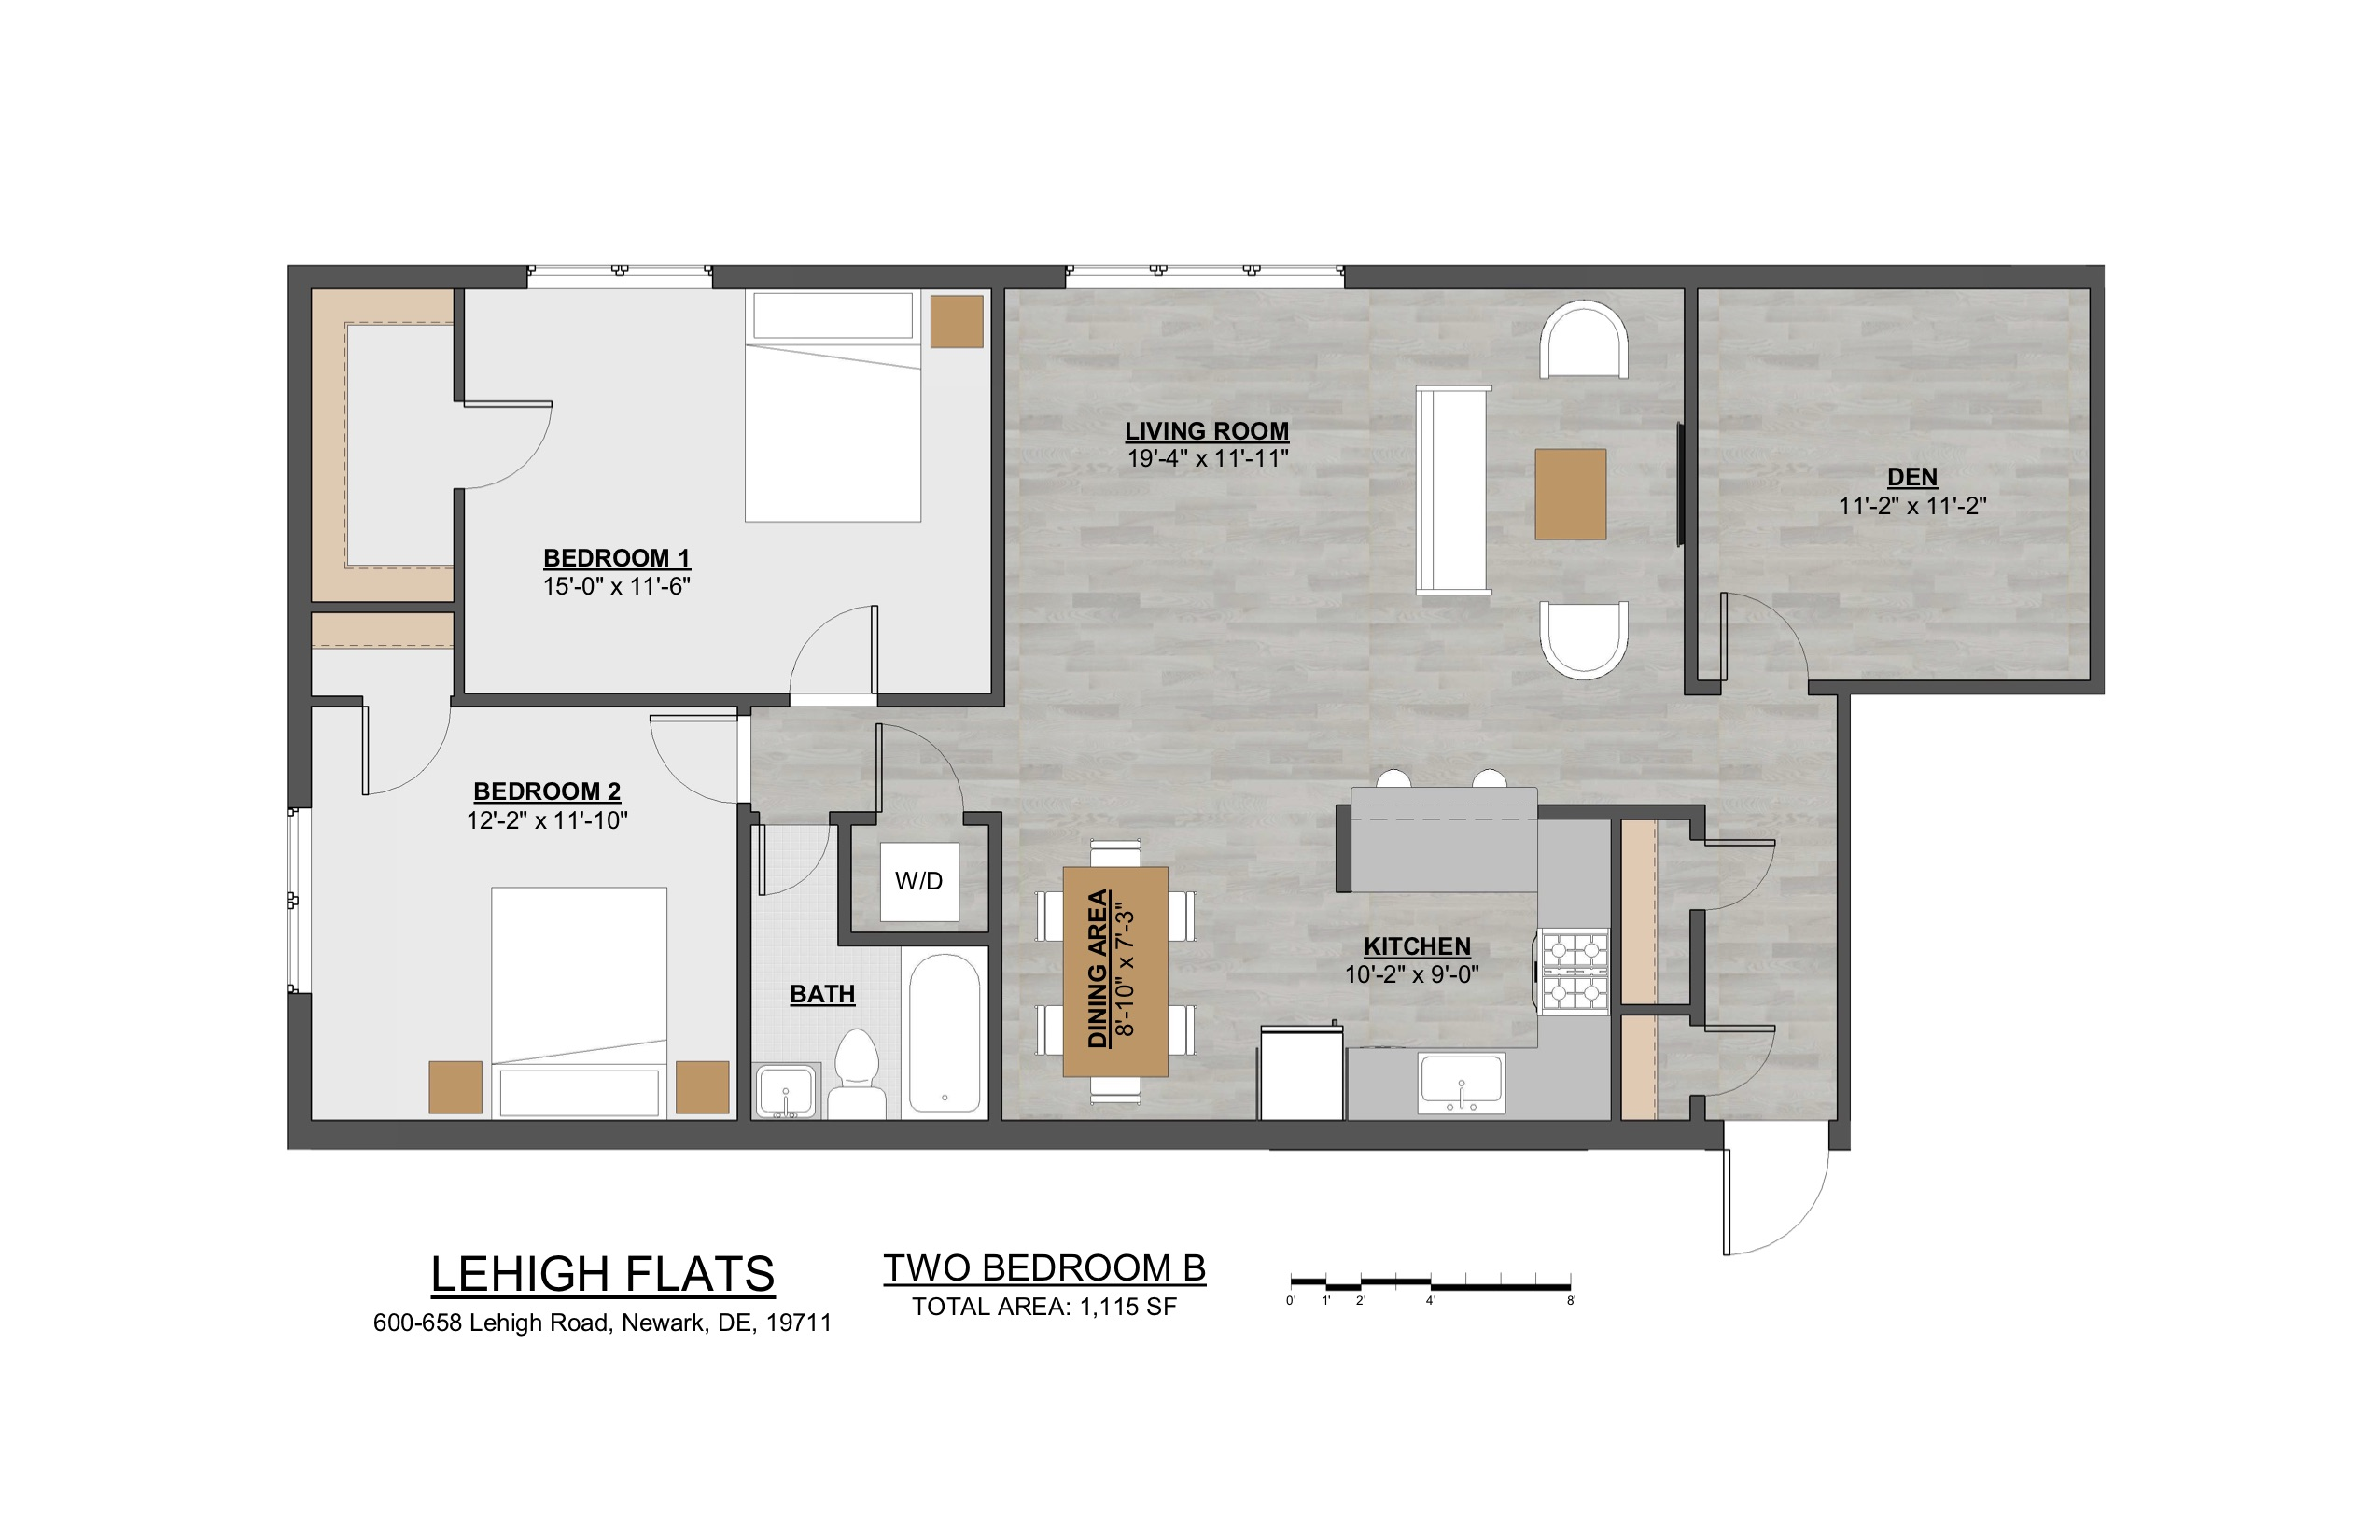 Two Bedroom B